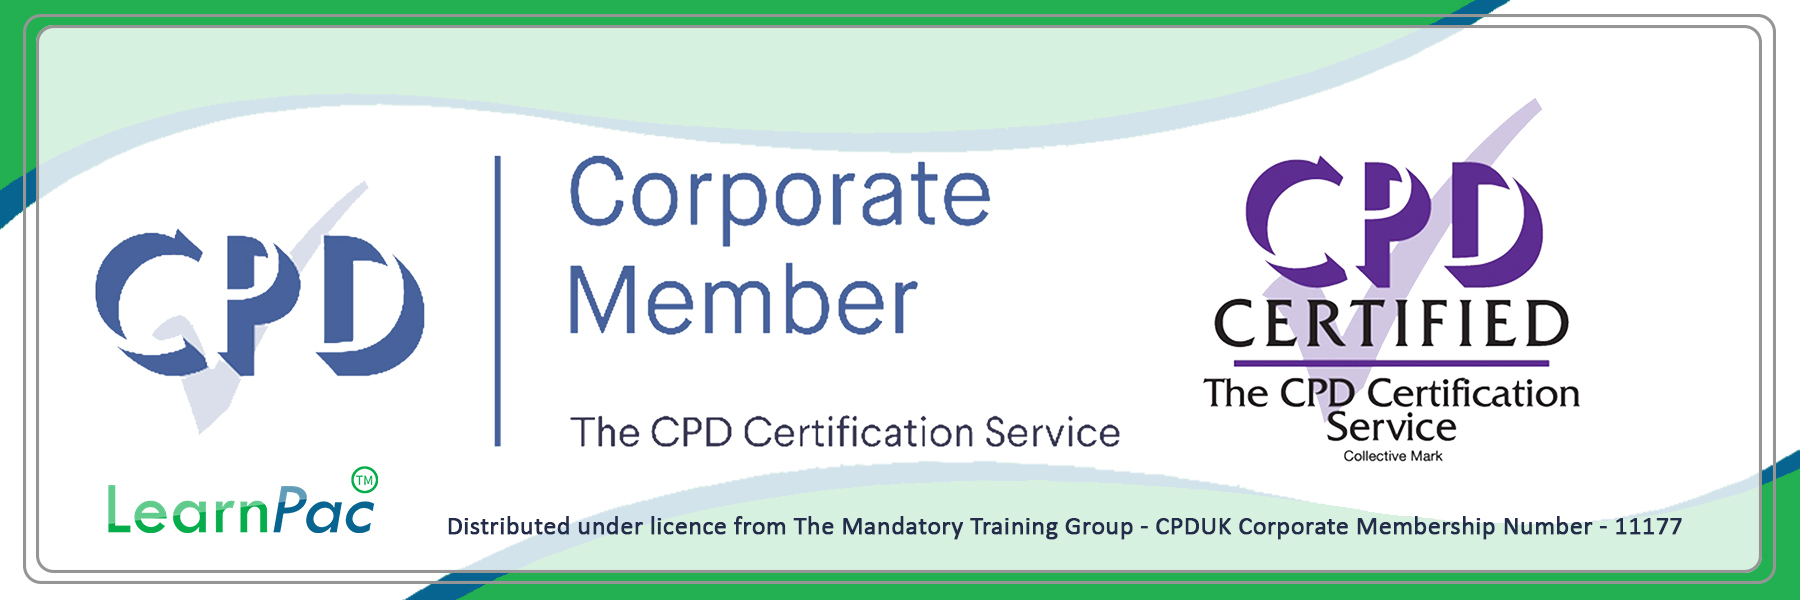 Prevention and Control of Infection - E-Learning Course - CPDUK Accredited - The Mandatory Training Group UK -